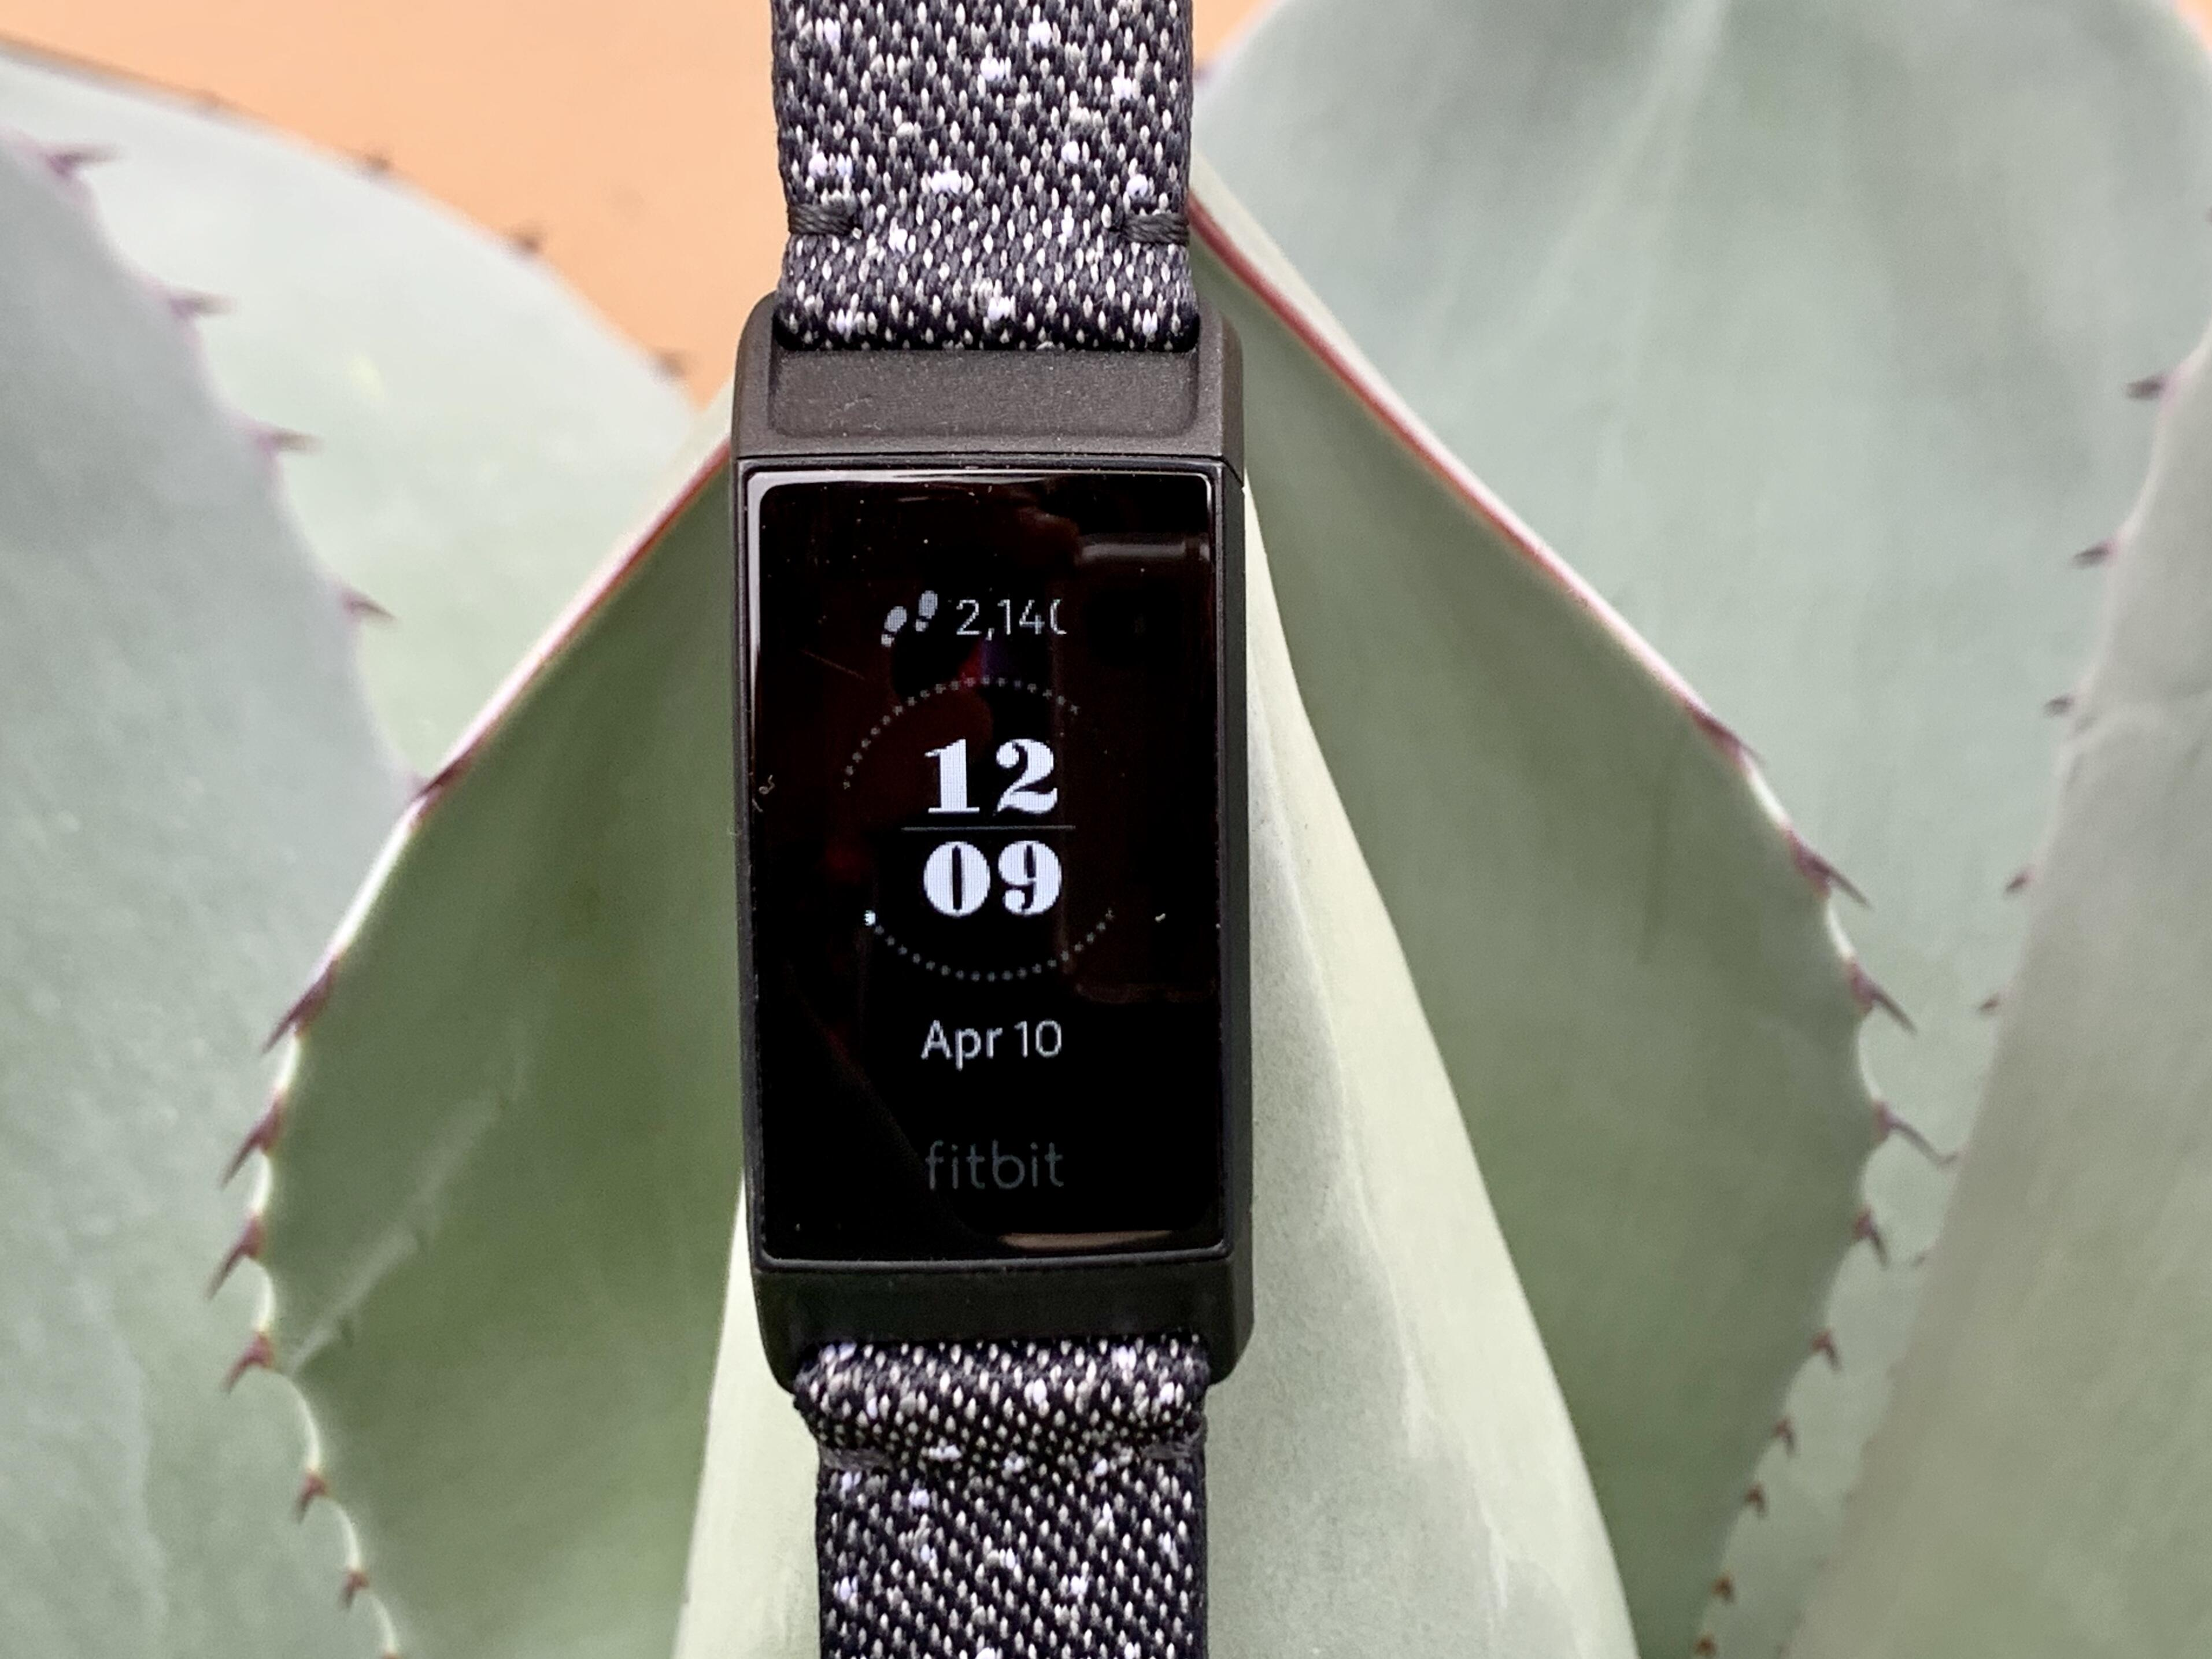 """<p>When it comes to wearables, few items are as crave-worthy as the <a href=""""https://www.cnet.com/reviews/apple-watch-series-5-2019-review/"""" target=""""_blank"""">Apple Watch Series 5</a>.&nbsp;</p>"""